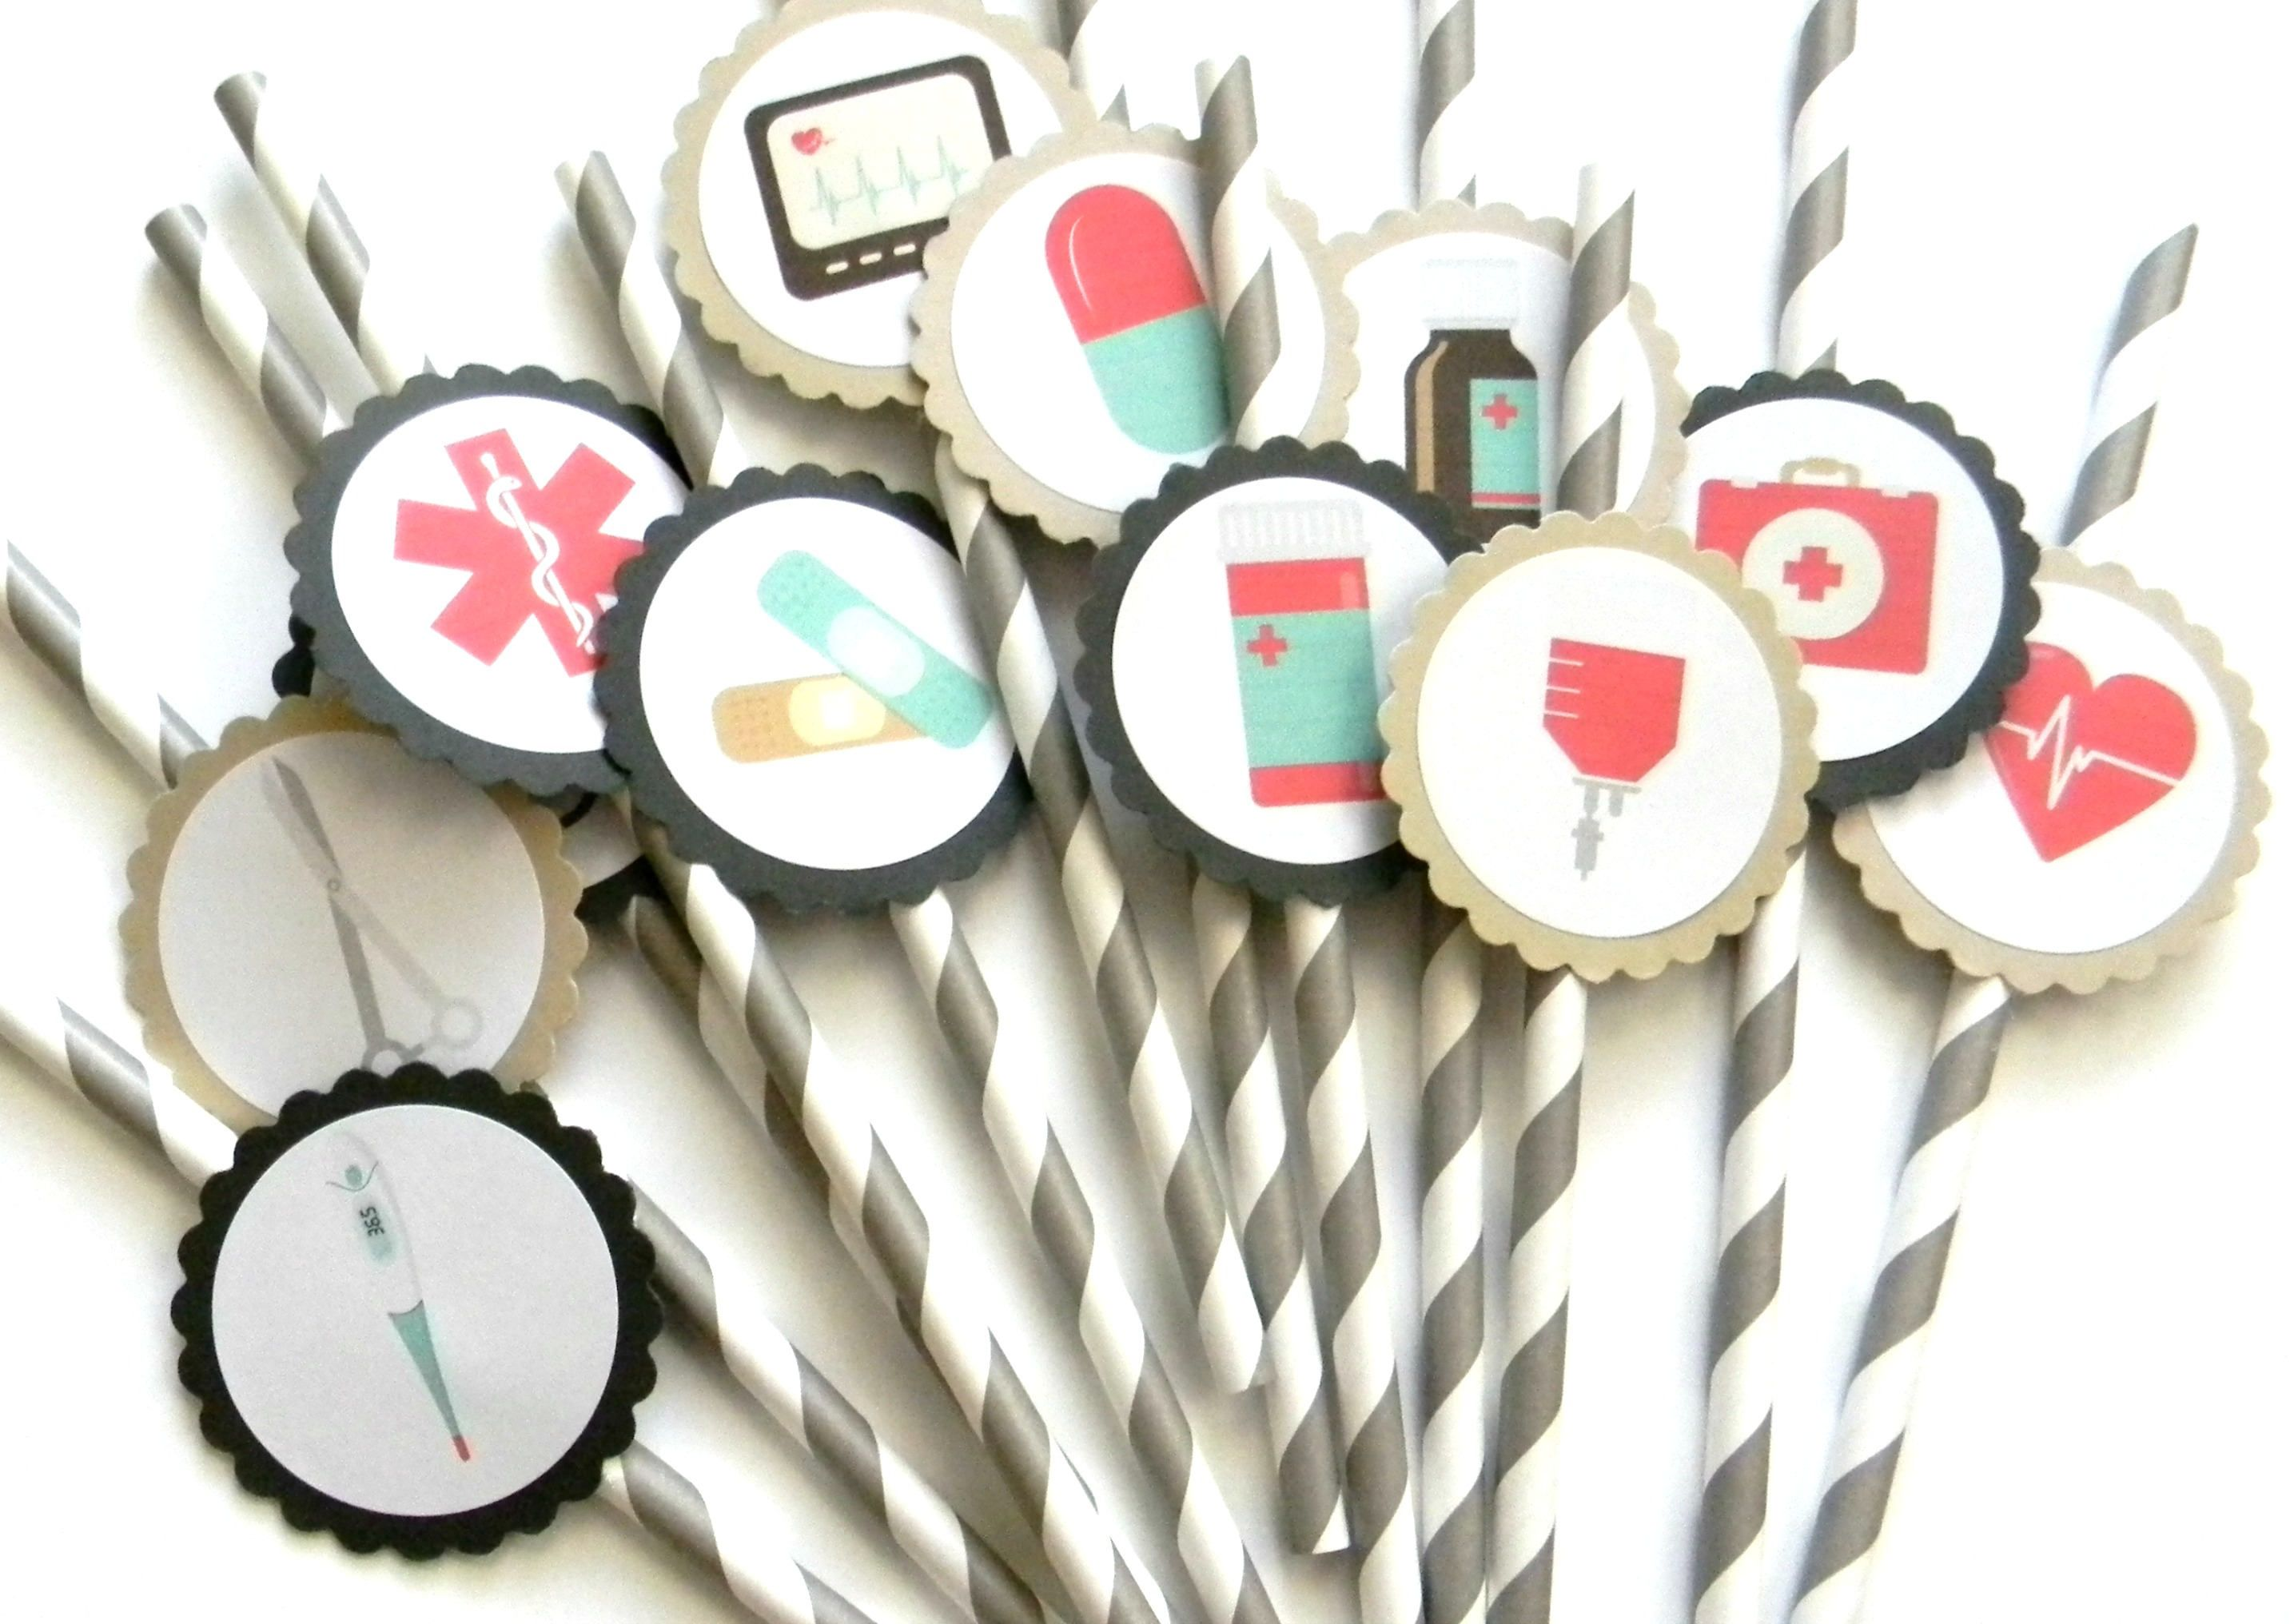 12 Vintage Medical Party Straws, Doctor Theme, Birthday Toppers ...